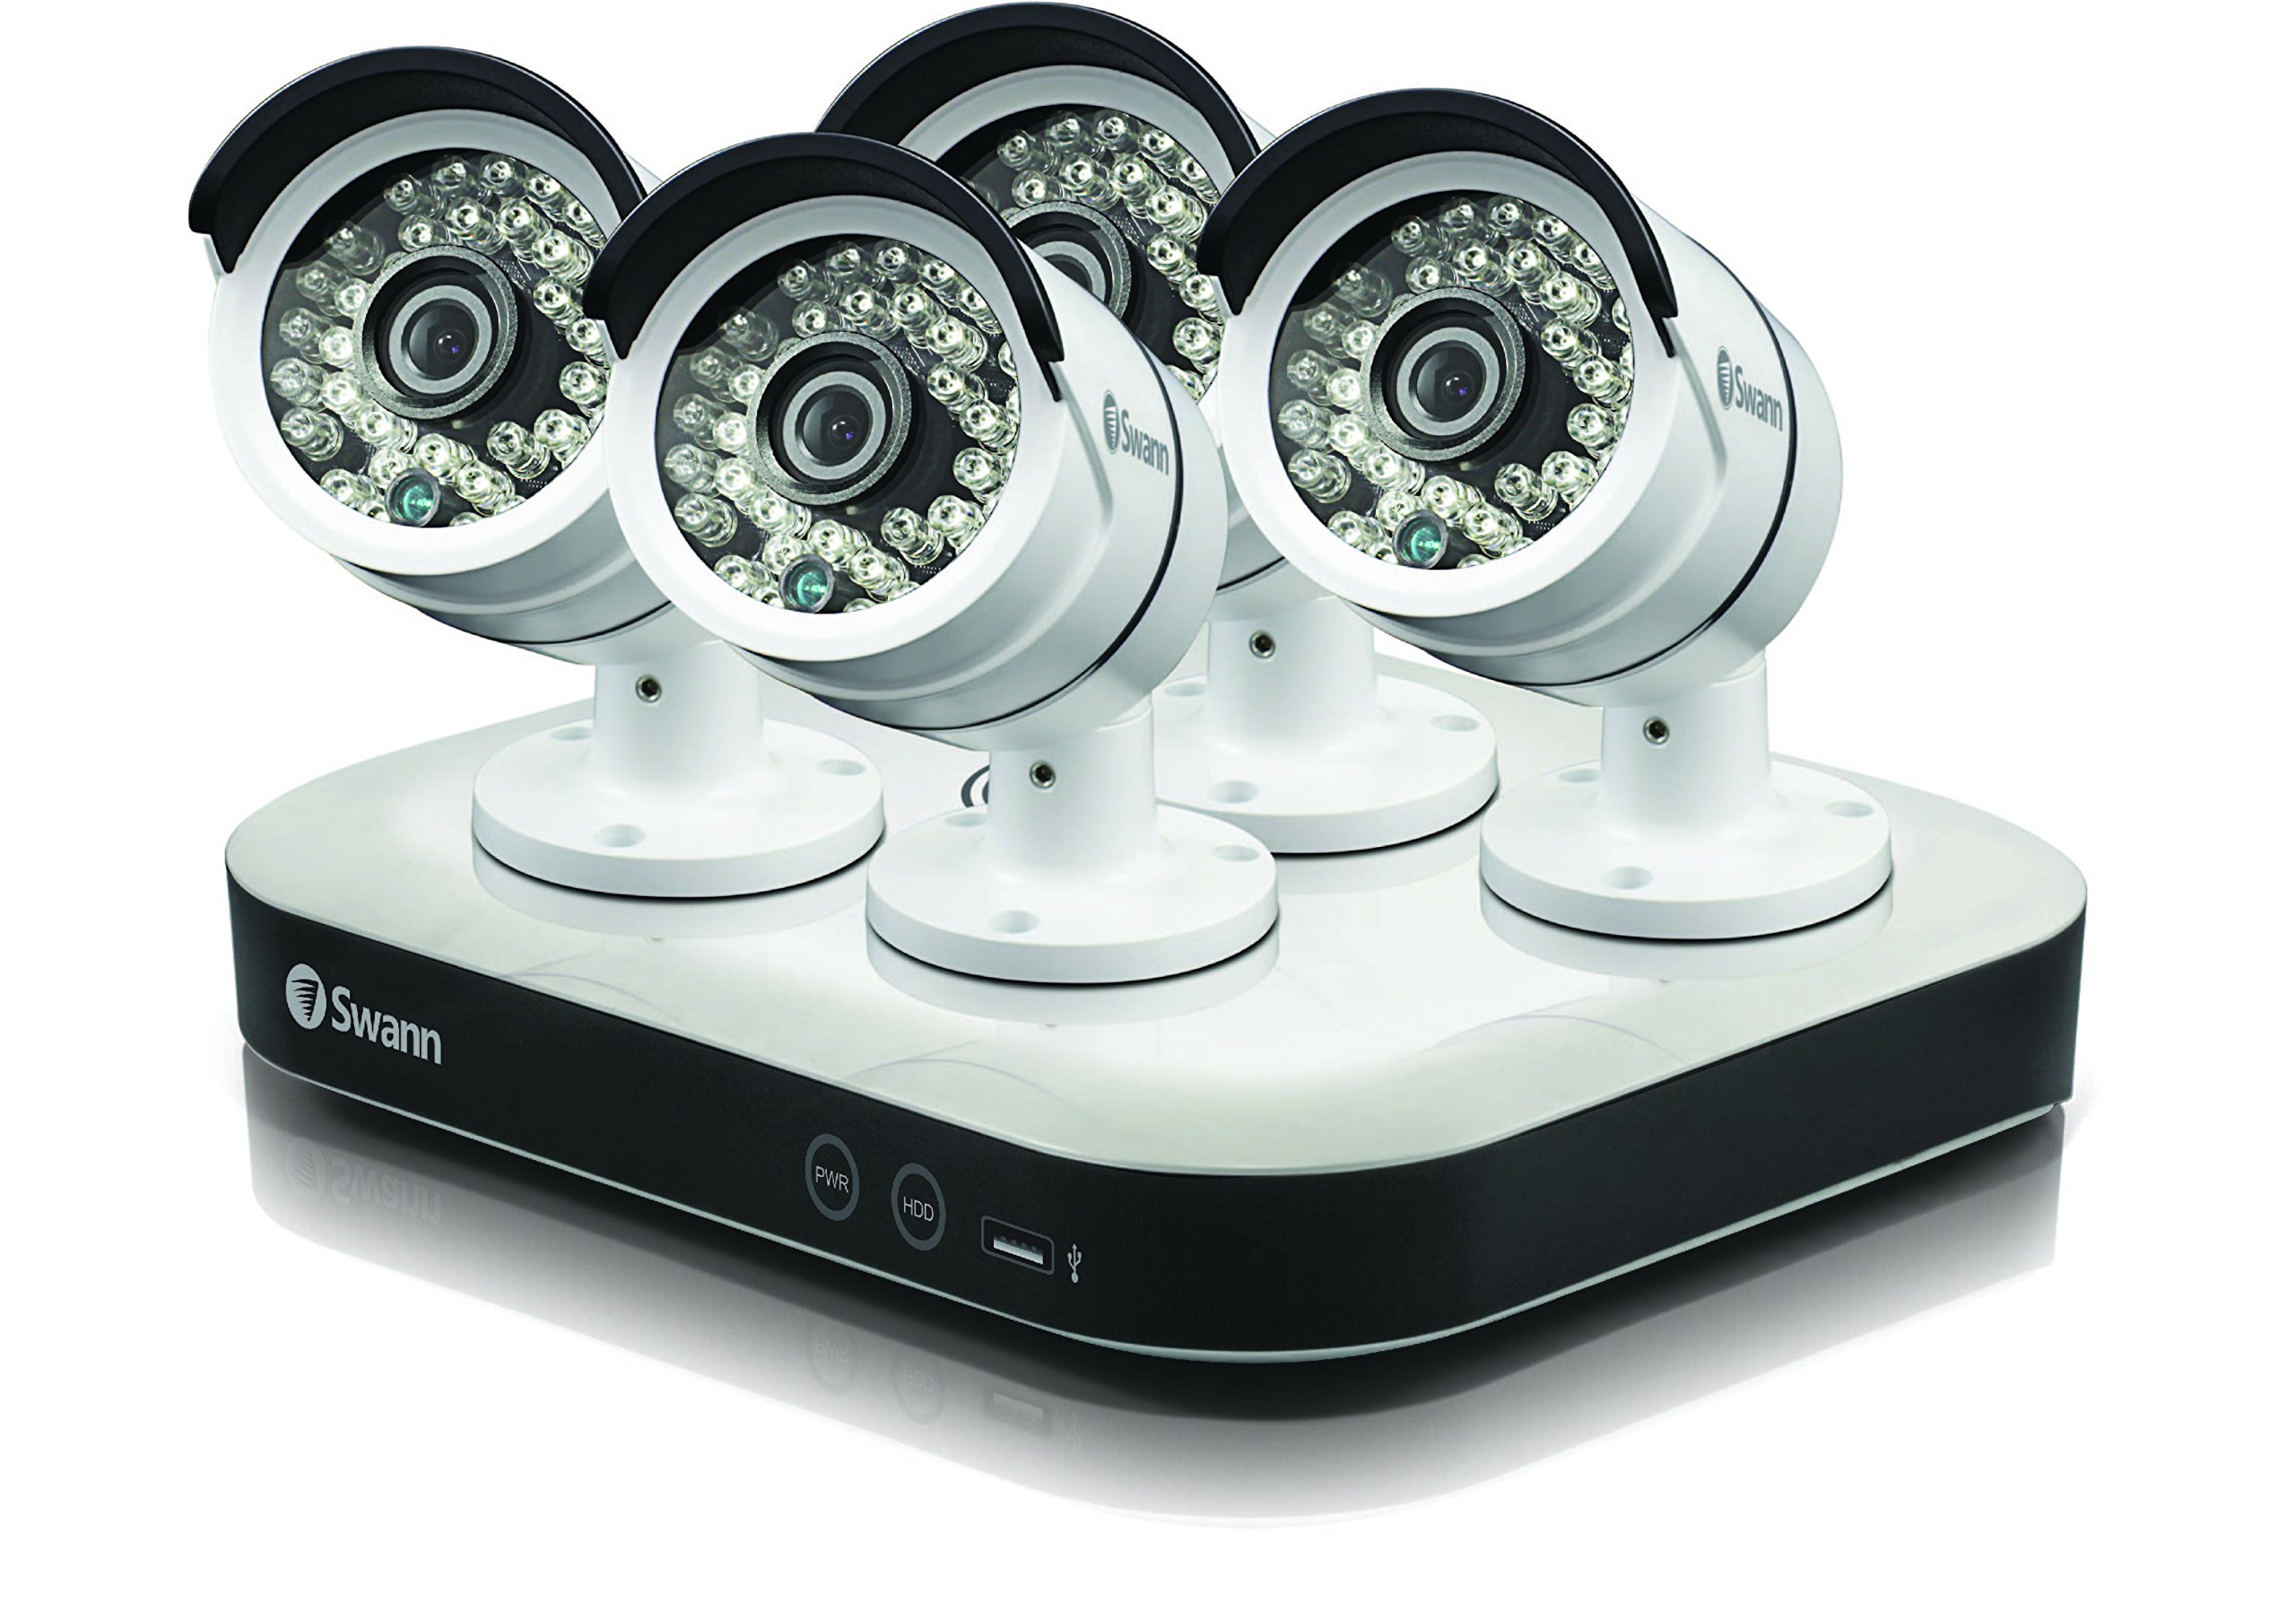 Swann SODVK-8720P134-US 8 Channel 1080p 1TB Security System Digital Video Recorder DVR with 4 x 720p Security Bullet CCTV Cameras